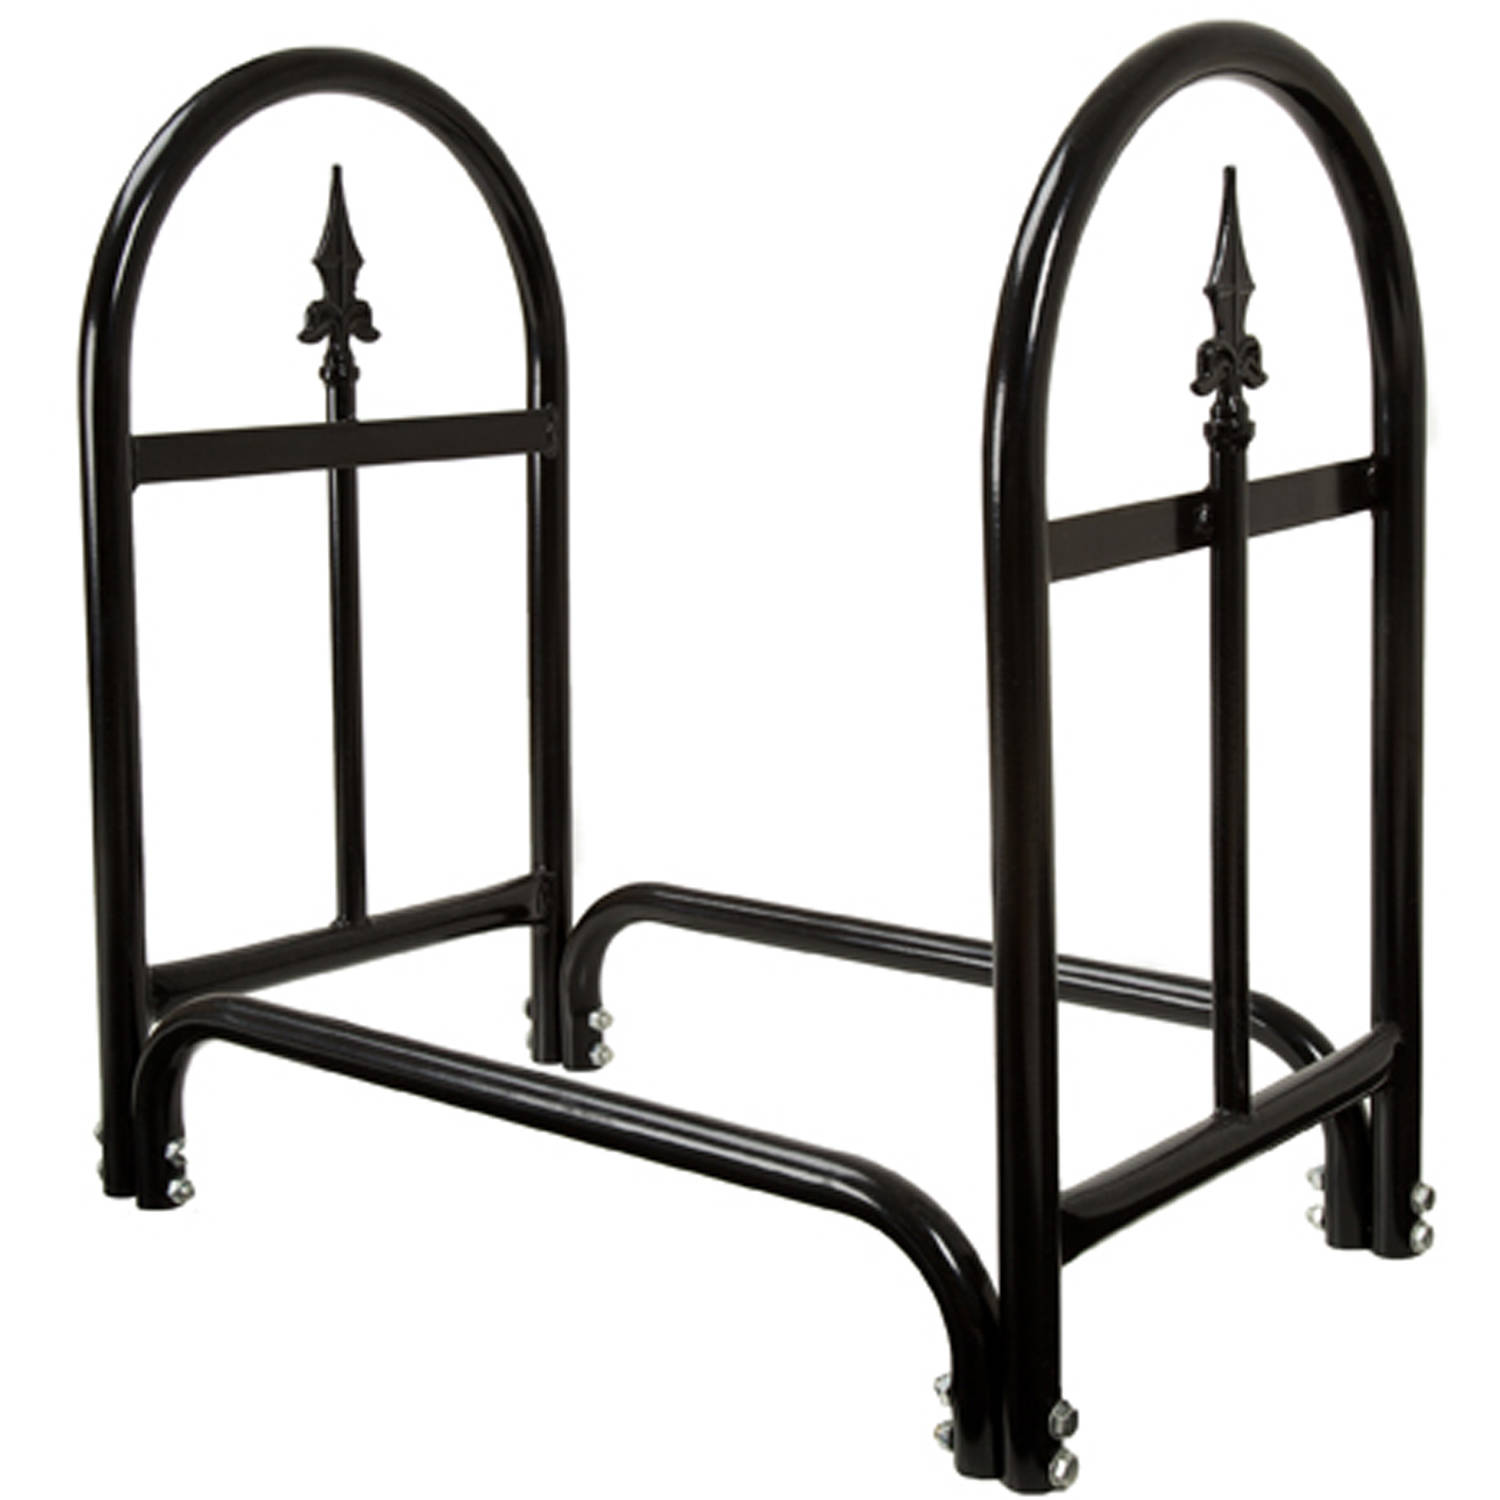 Pure Garden Fireplace Log Rack with Finial Design, Black